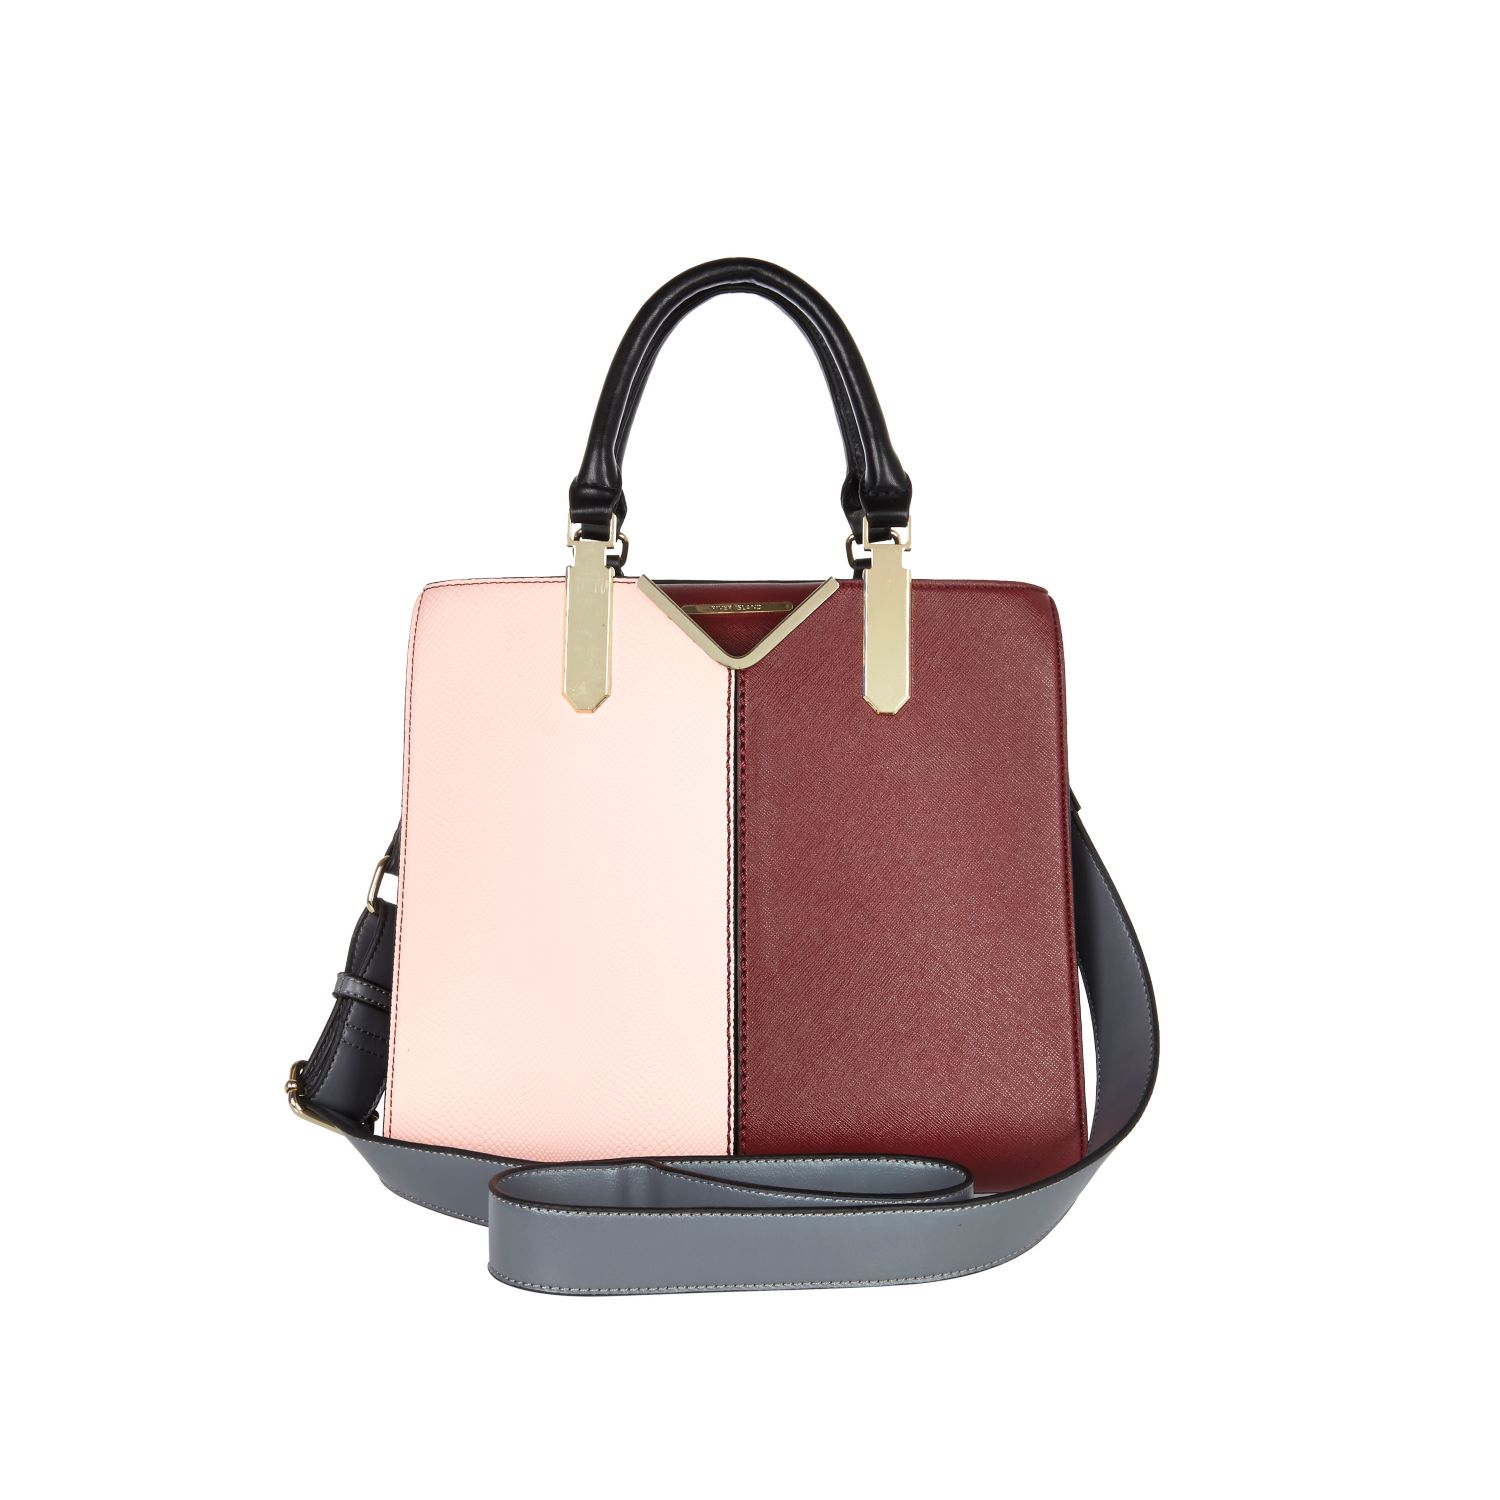 River Island Light Pink Colour Block Tote Bag in Pink - Lyst fefcebec5d